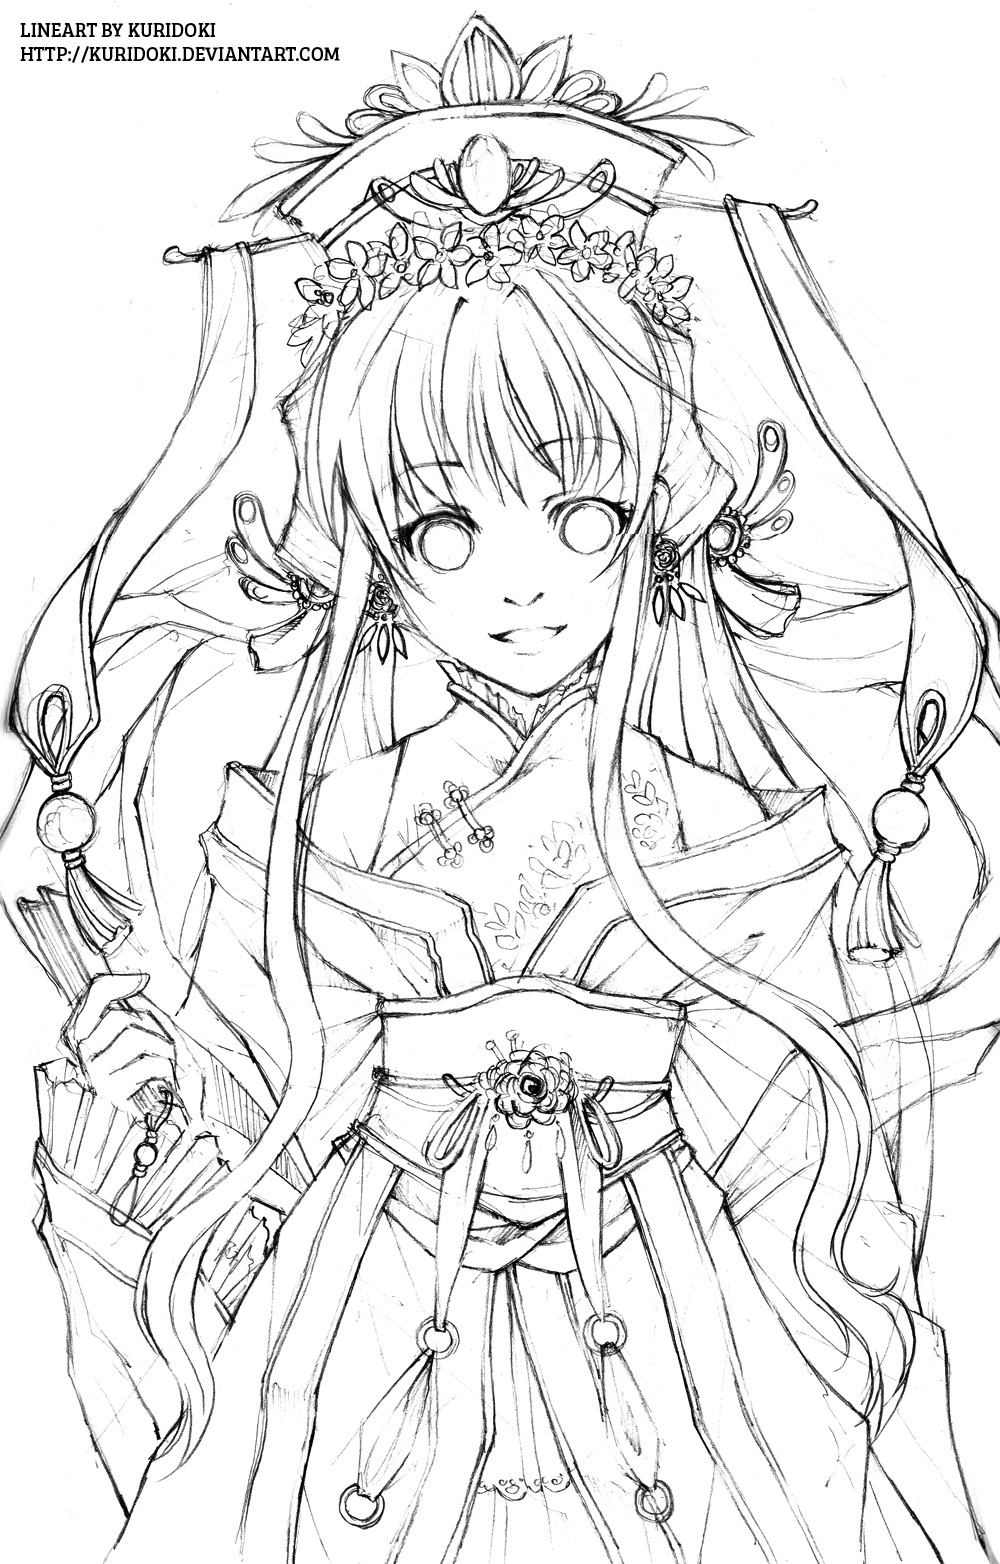 Line Art Man : Hana hime lineart by kuridoki on deviantart